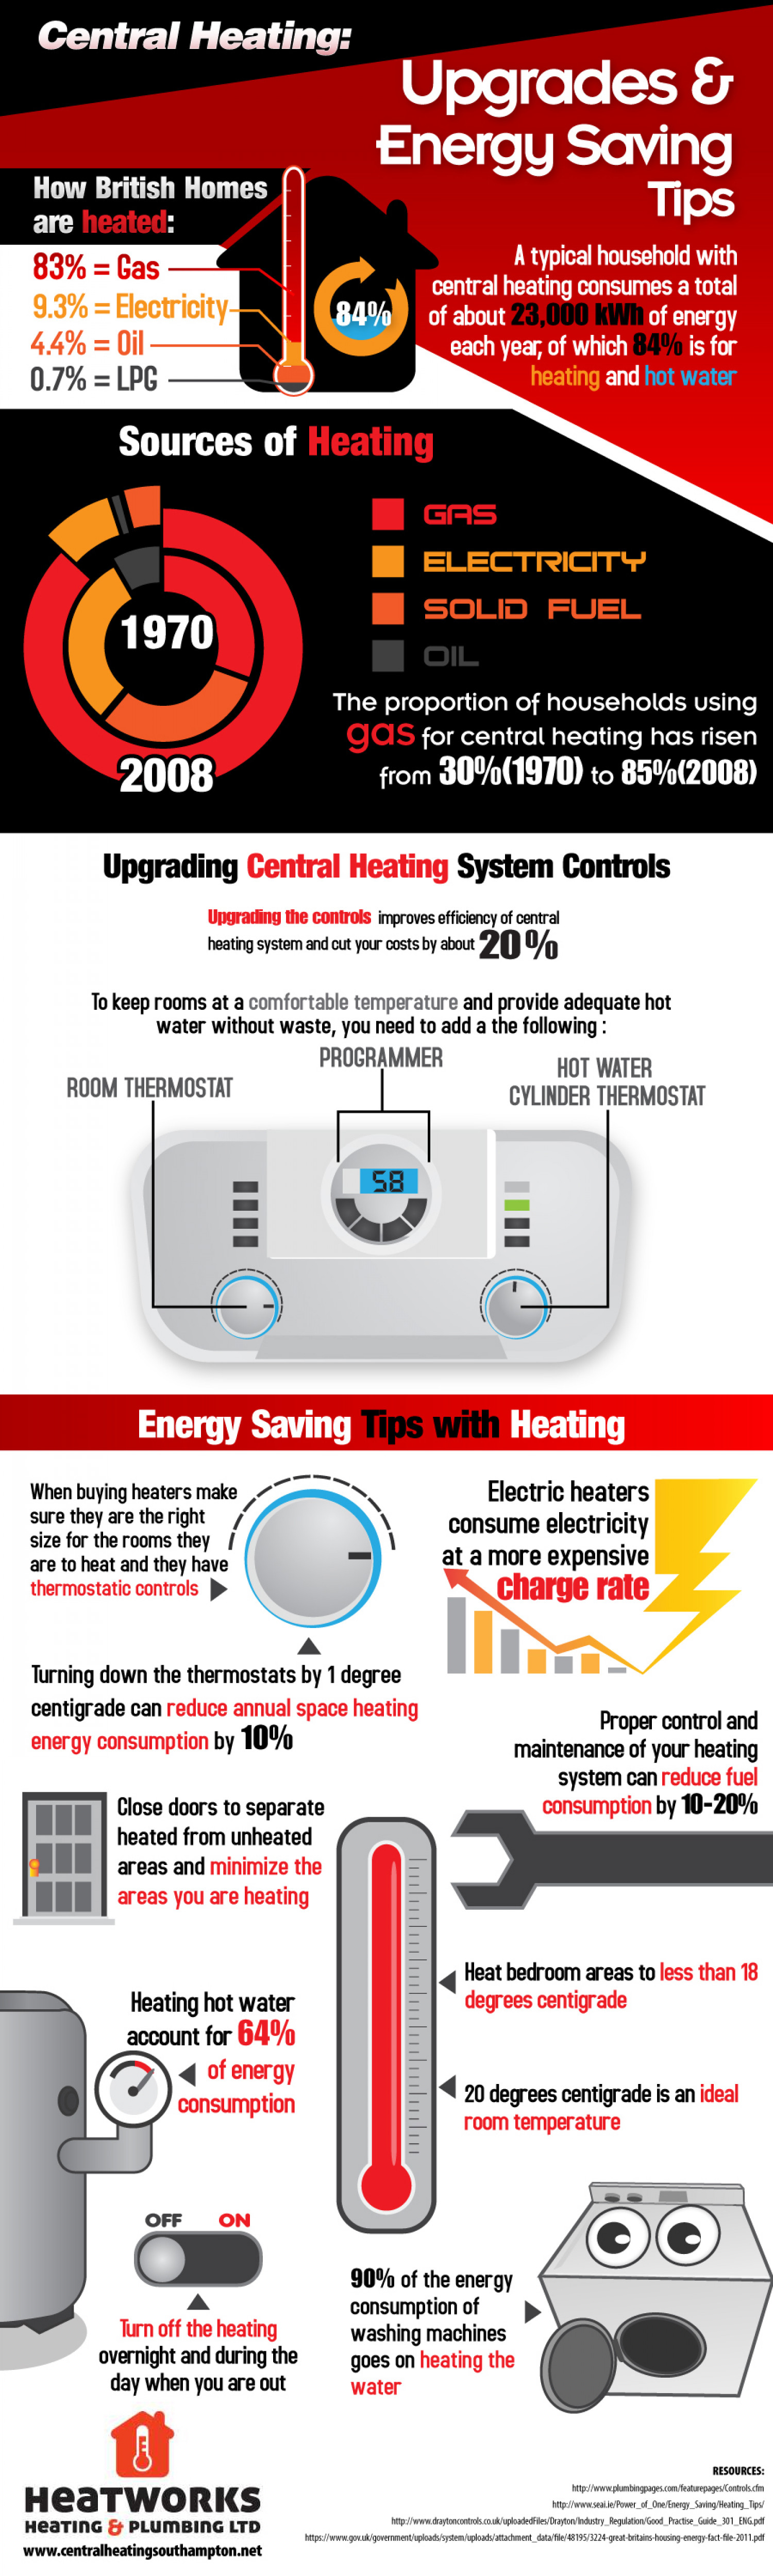 Central Heating: Upgrades and Energy Saving Tips Infographic